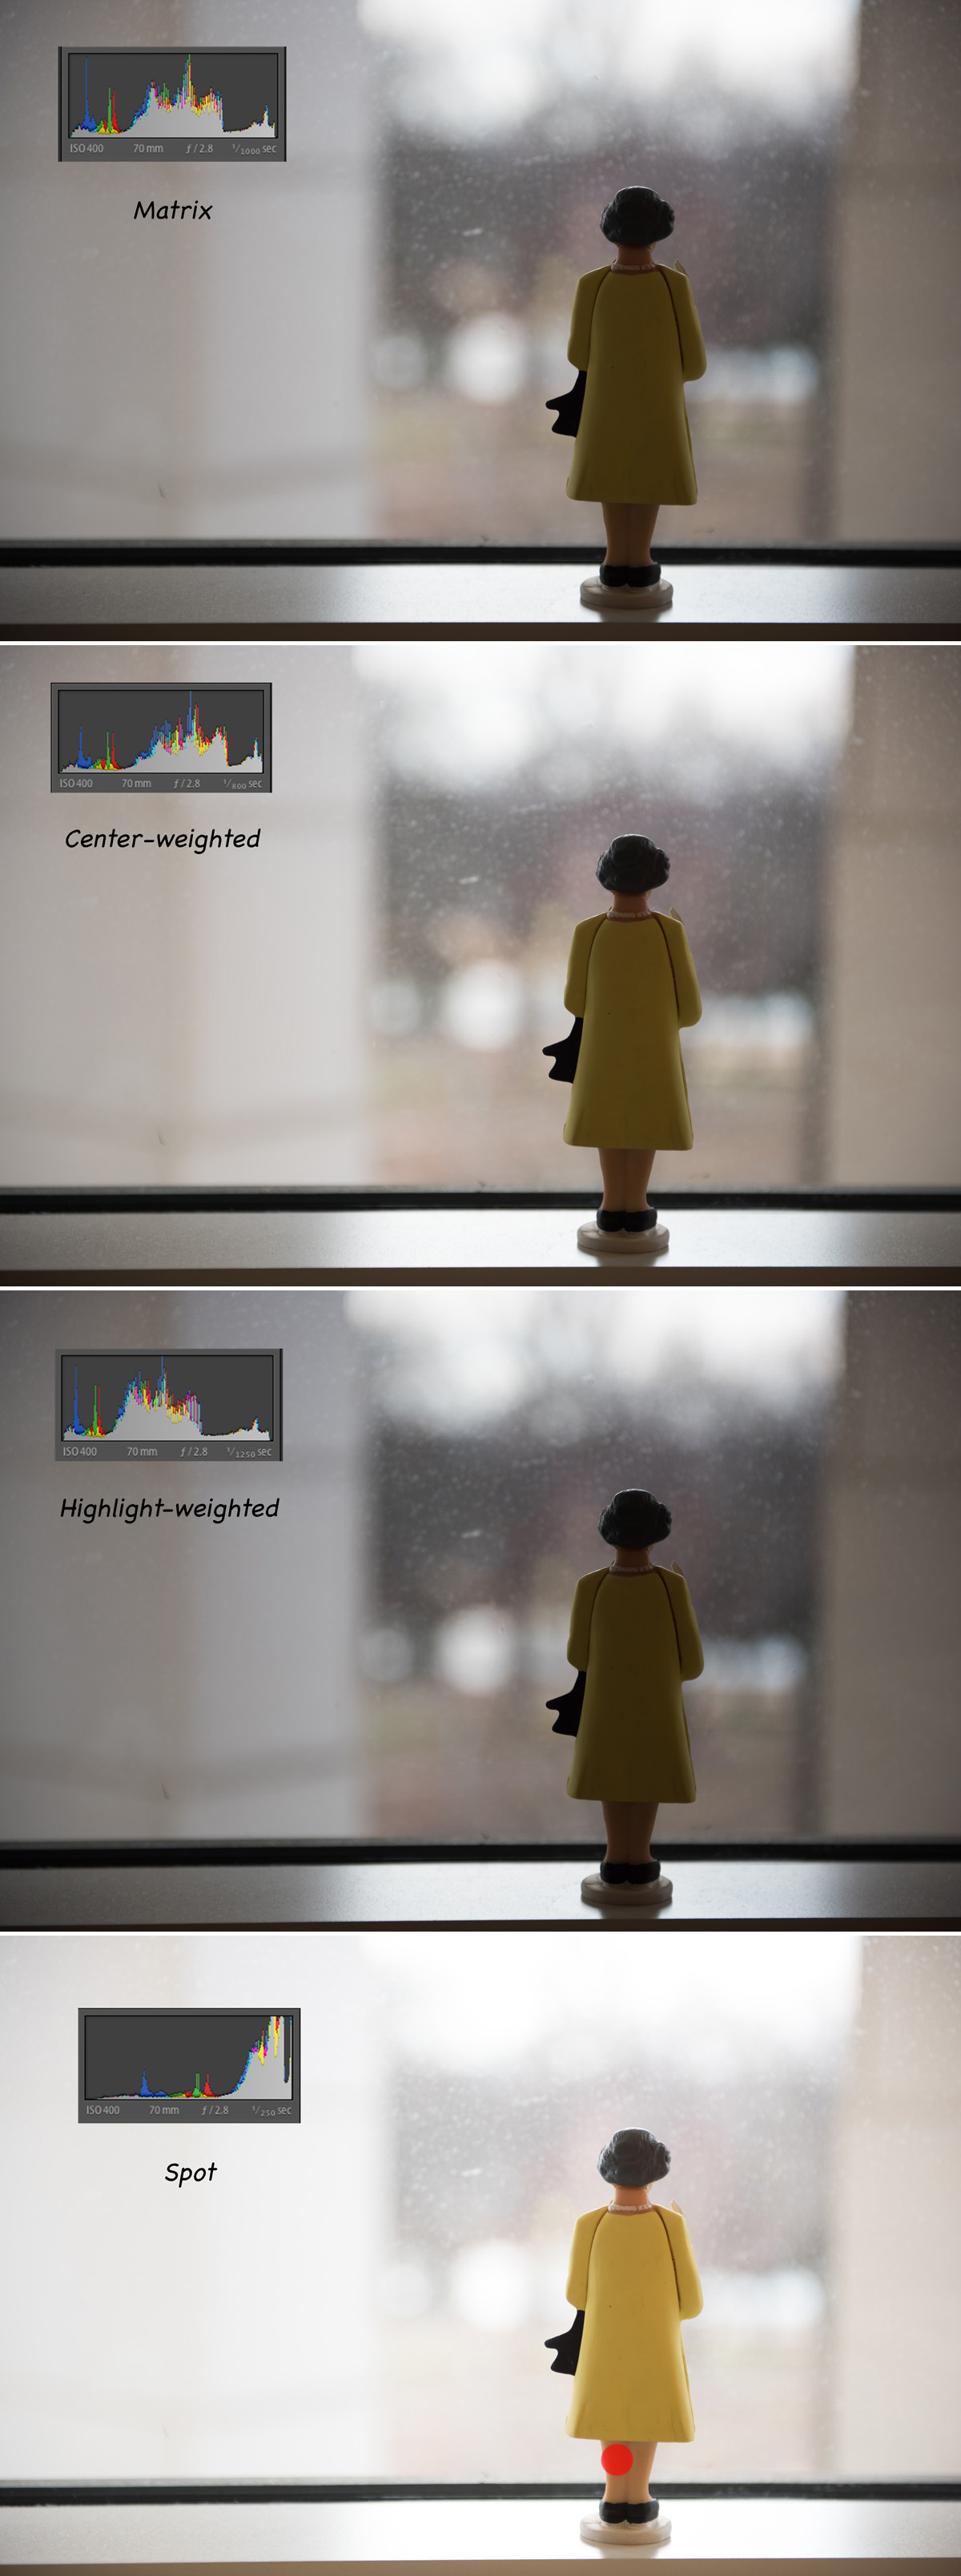 examples of different metering modes in a backlight situation by Amy Kolodziej